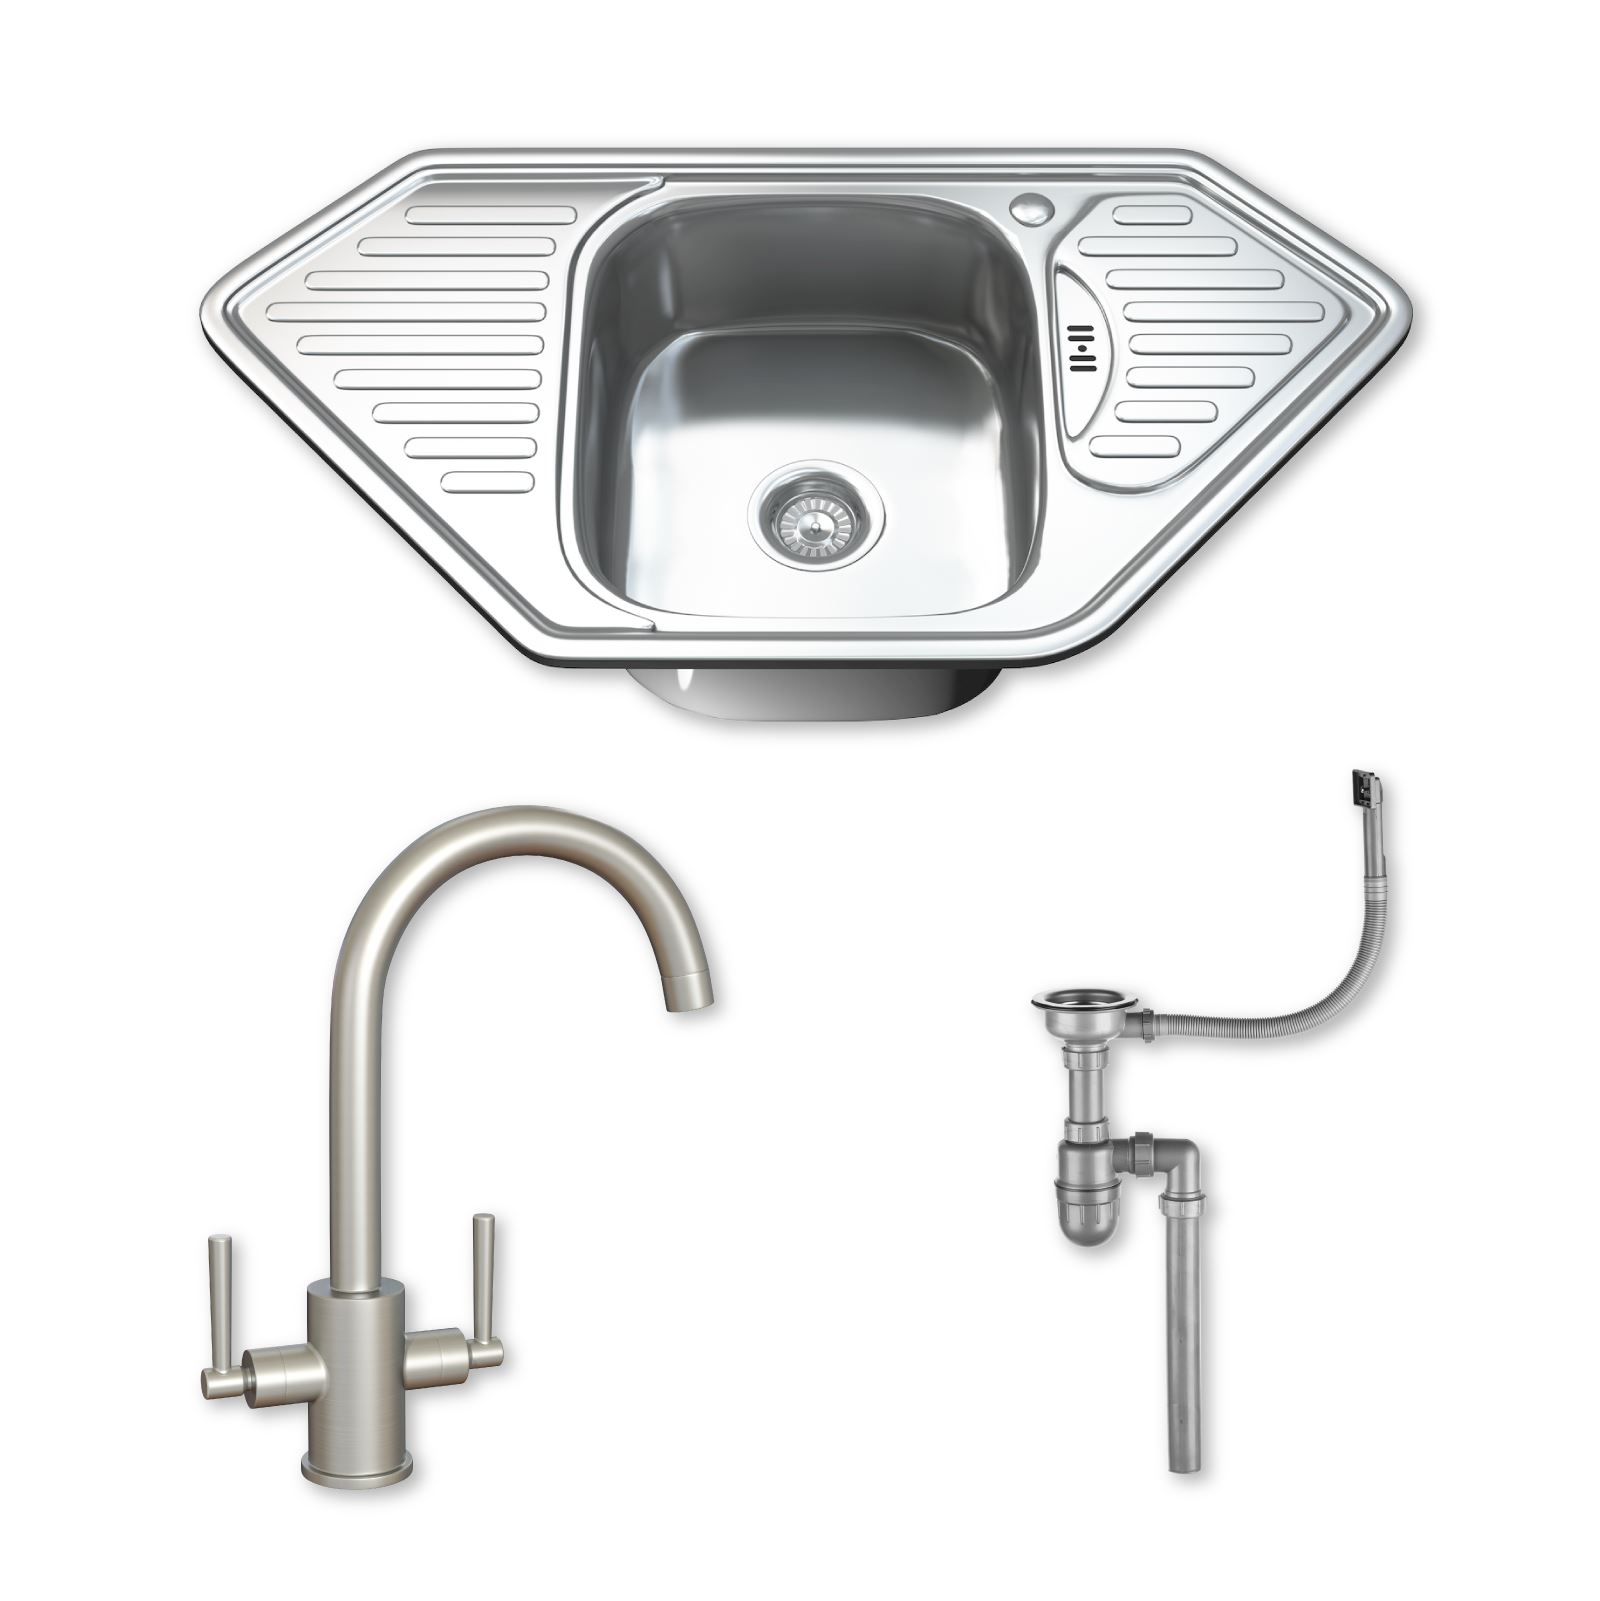 Details about 1.0 Single Corner Bowl Stainless Steel Kitchen Sink, Tap ...